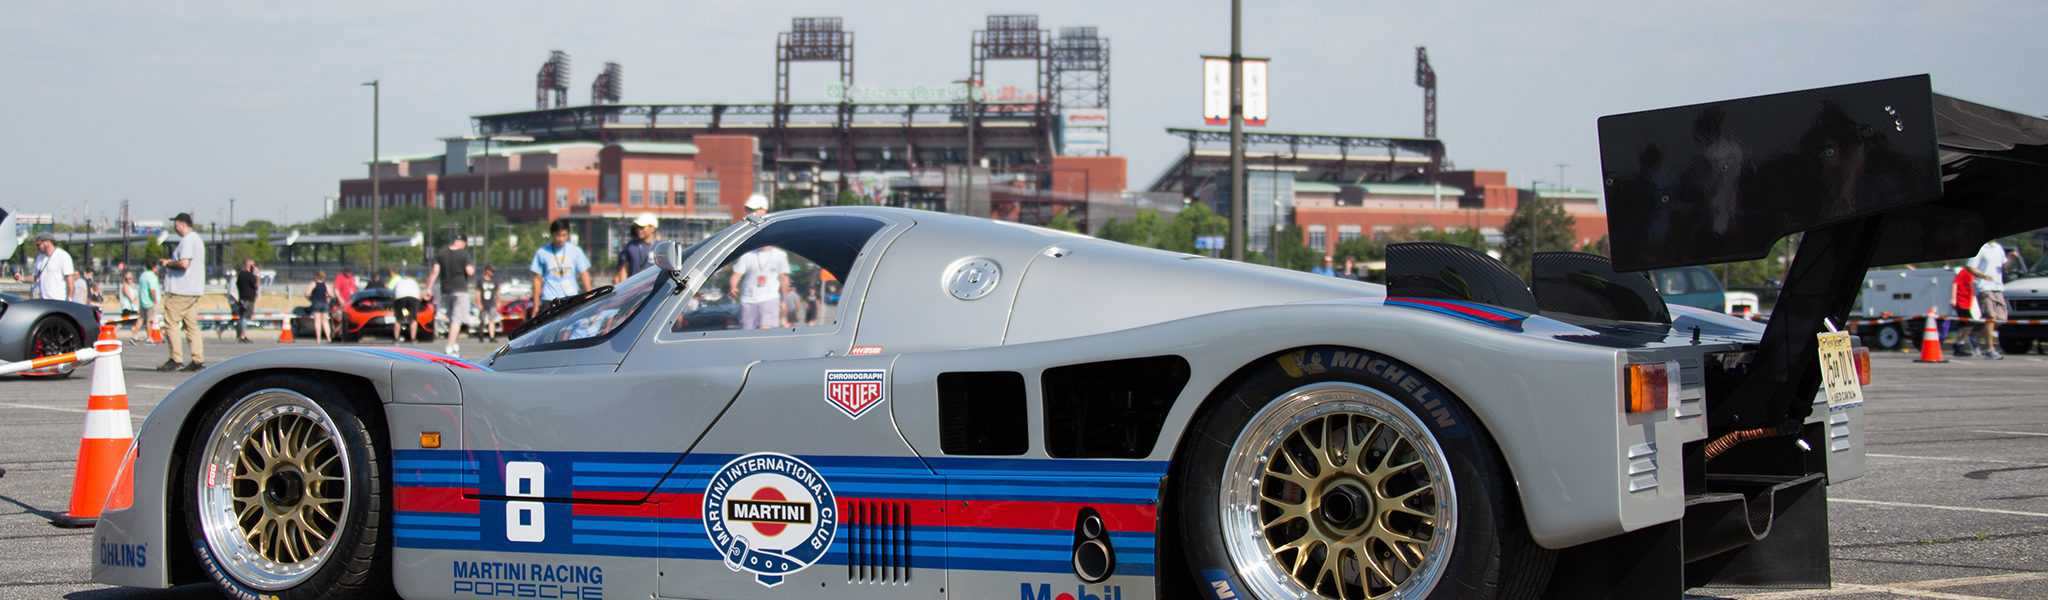 CF Charities SuperCar show in Philly